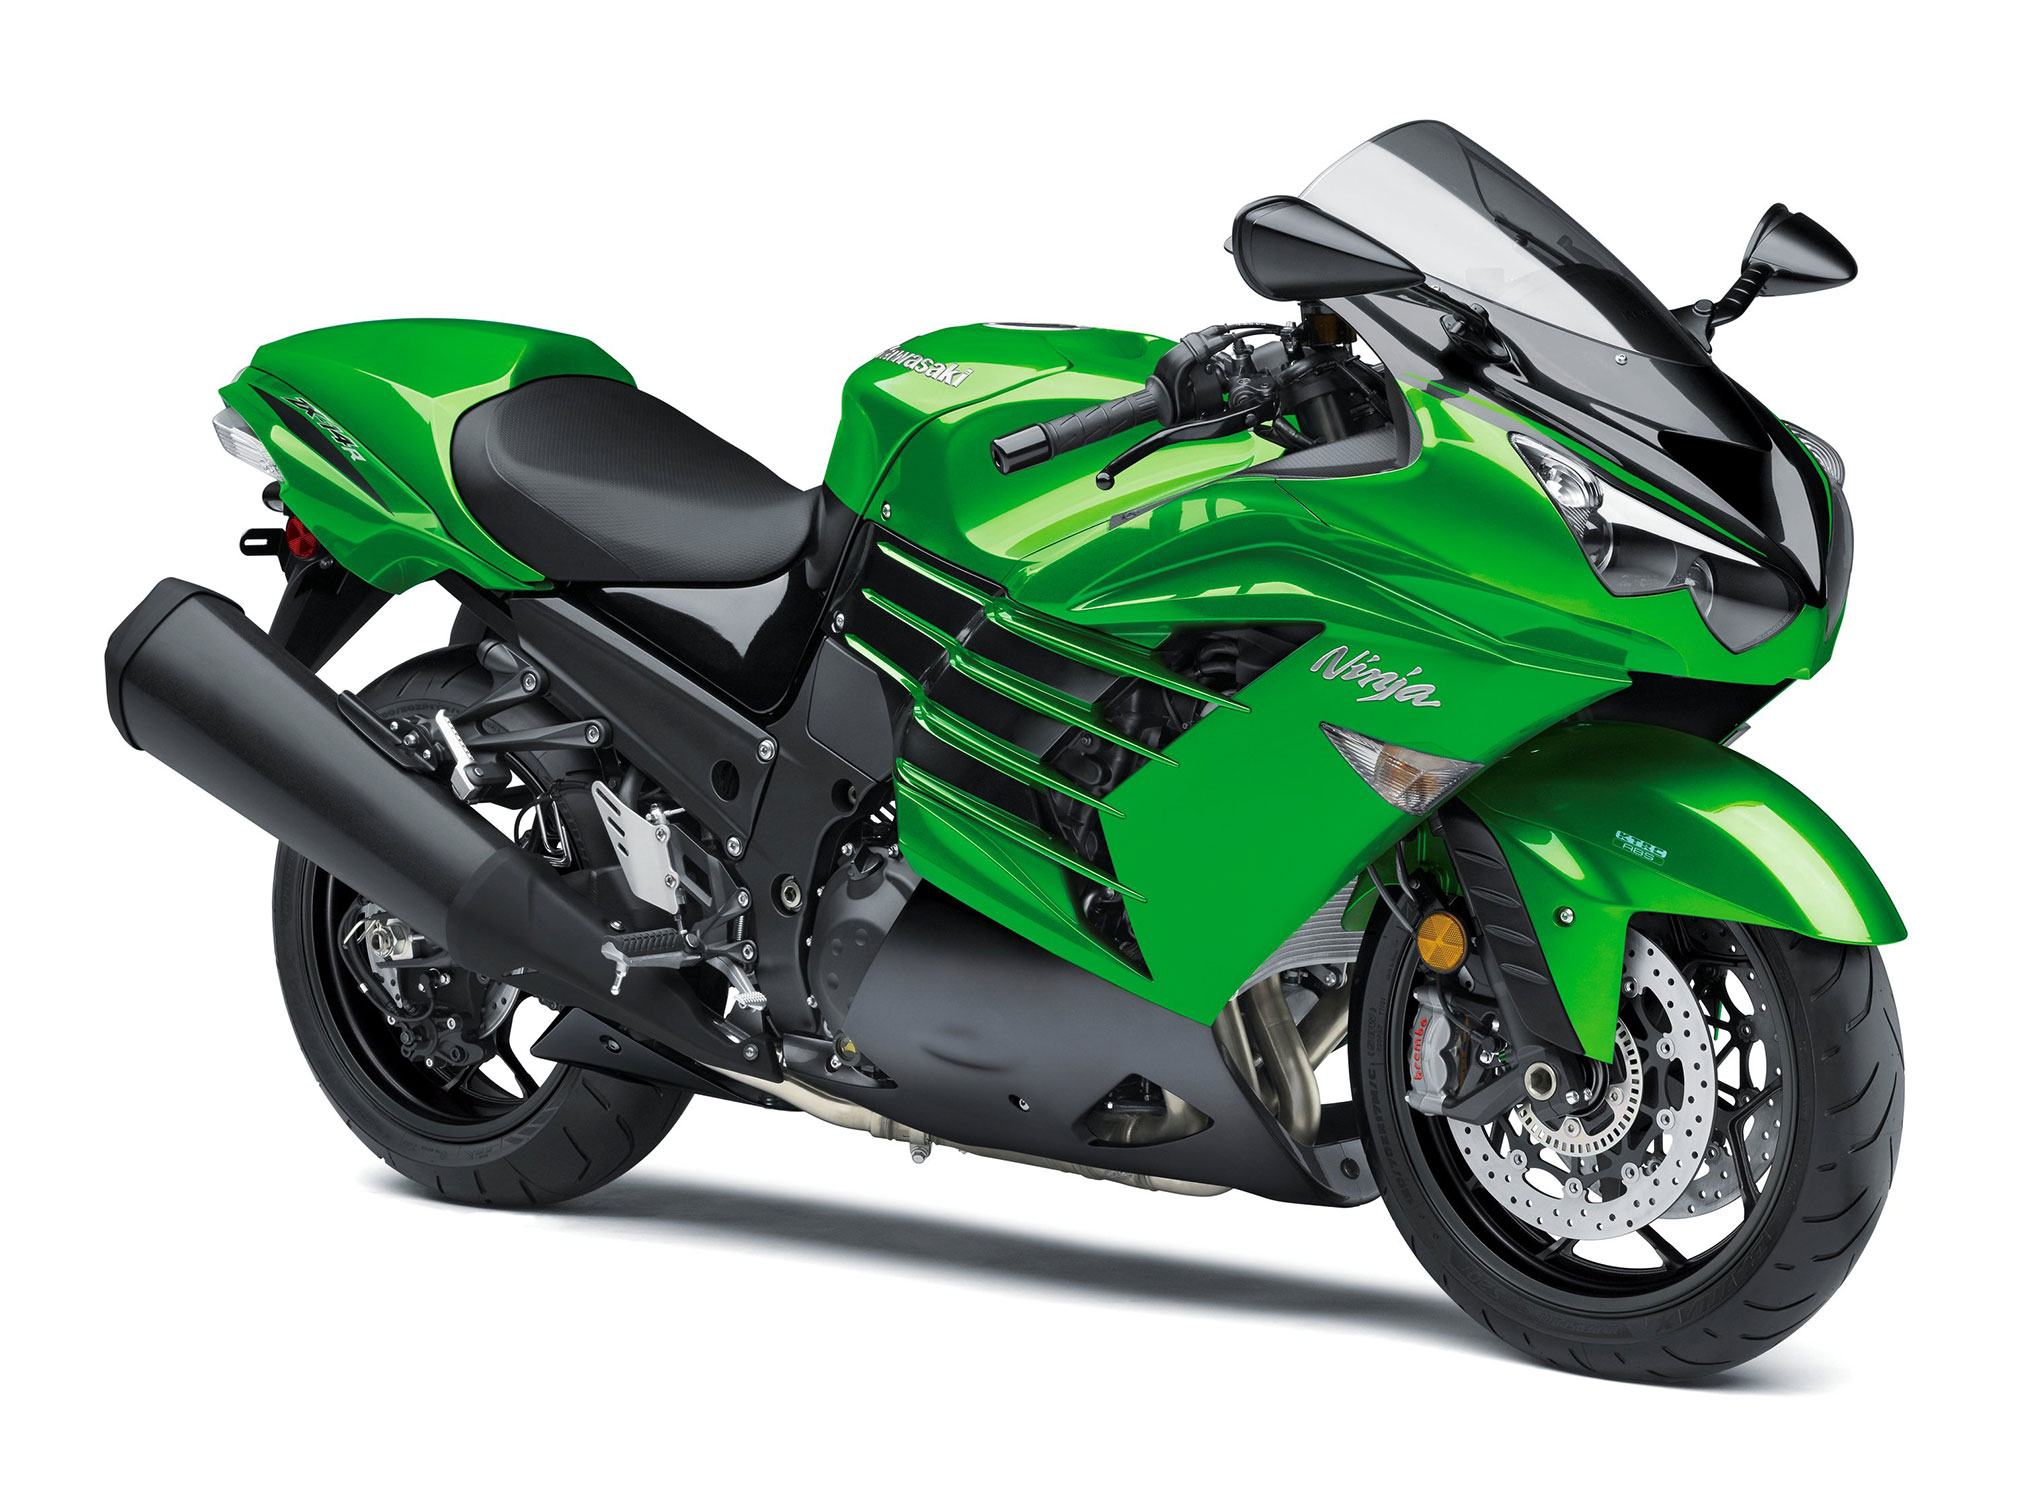 Kawasaki Ninja R Special Edition Review